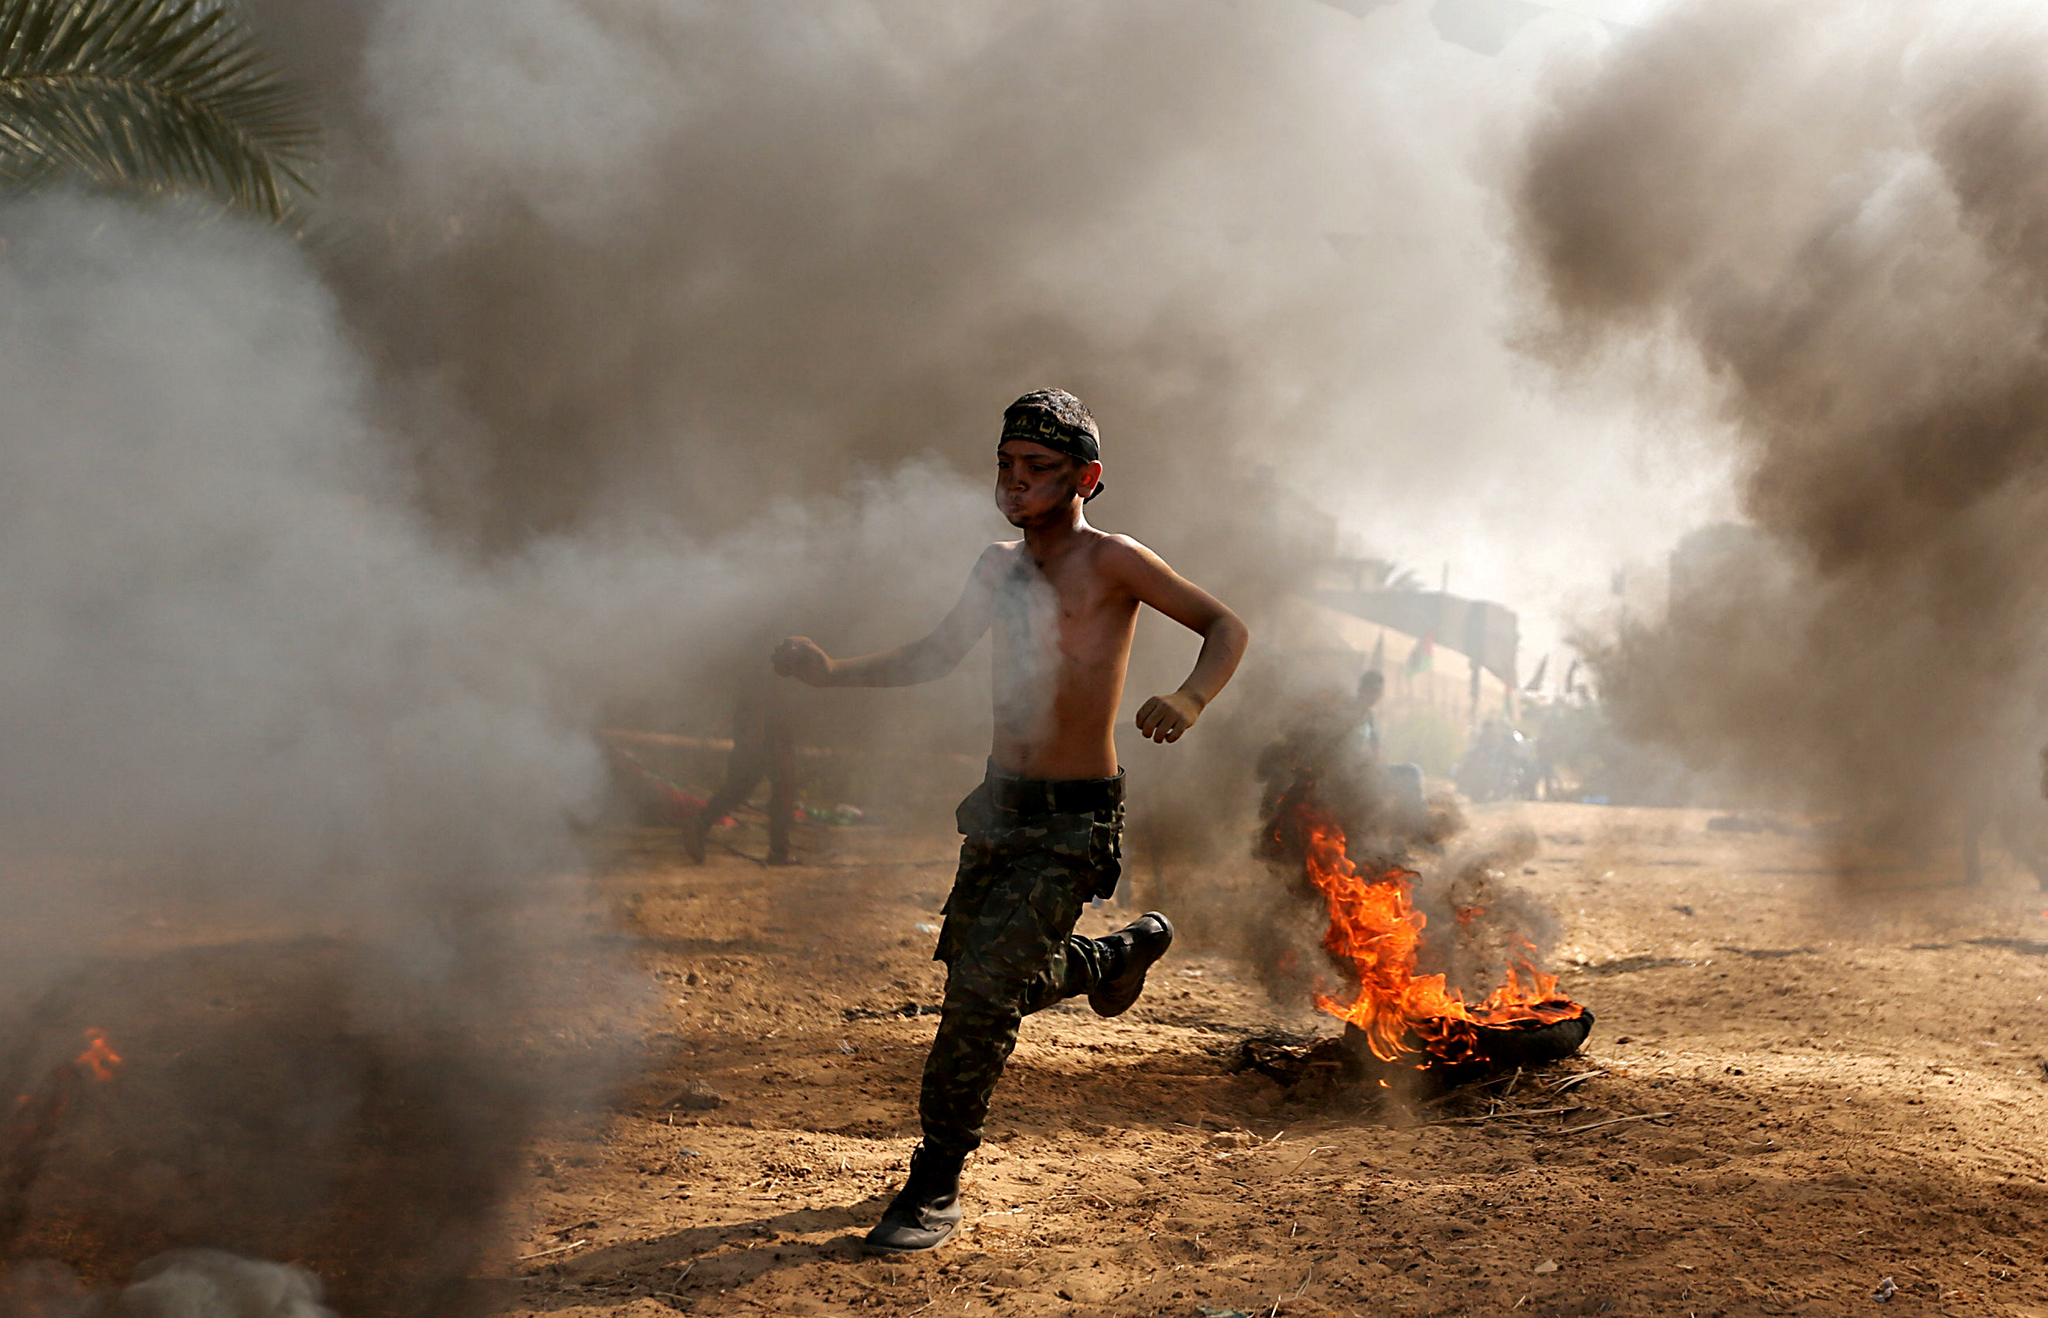 A young Palestinian takes part in a military-style exercise at a summer camp organised by the Islamic Jihad Movement in Khan Younis in the southern Gaza Strip July 13, 2016. REUTERS/Ibraheem Abu Mustafa